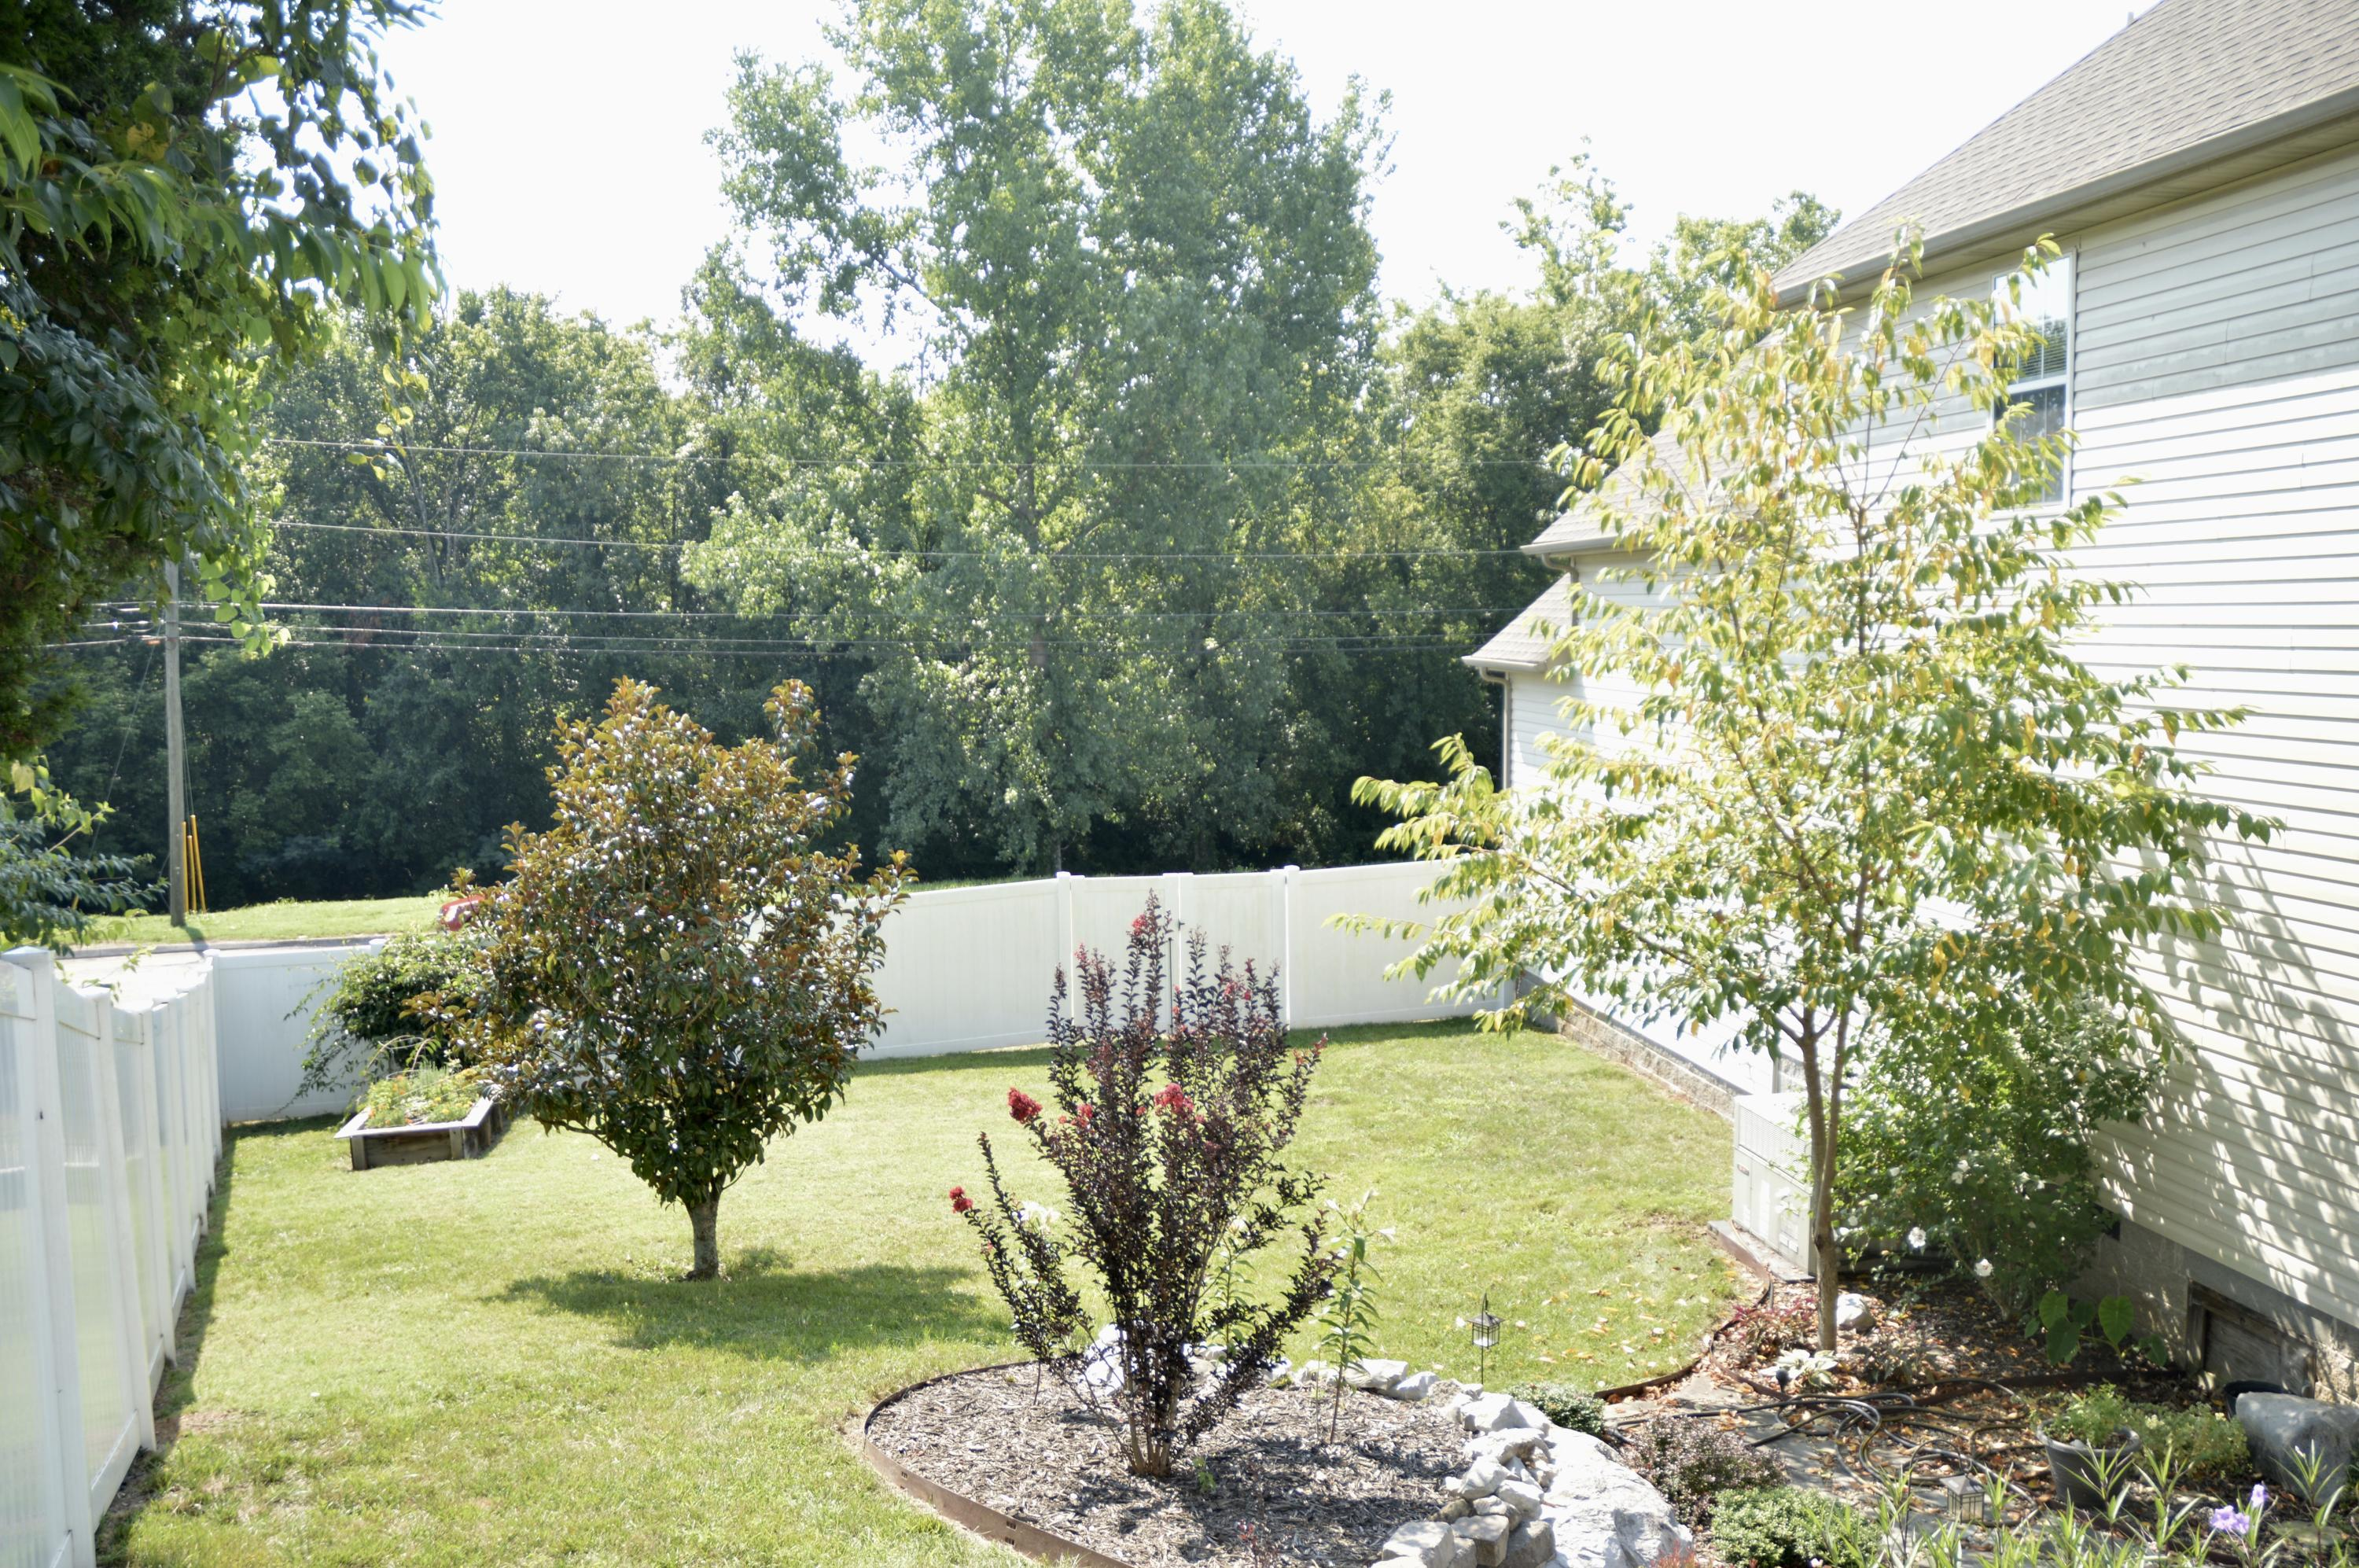 3101 Pinex Lane, Knoxville, Tennessee 37921, 3 Bedrooms Bedrooms, ,2 BathroomsBathrooms,Single Family,For Sale,Pinex,1089180